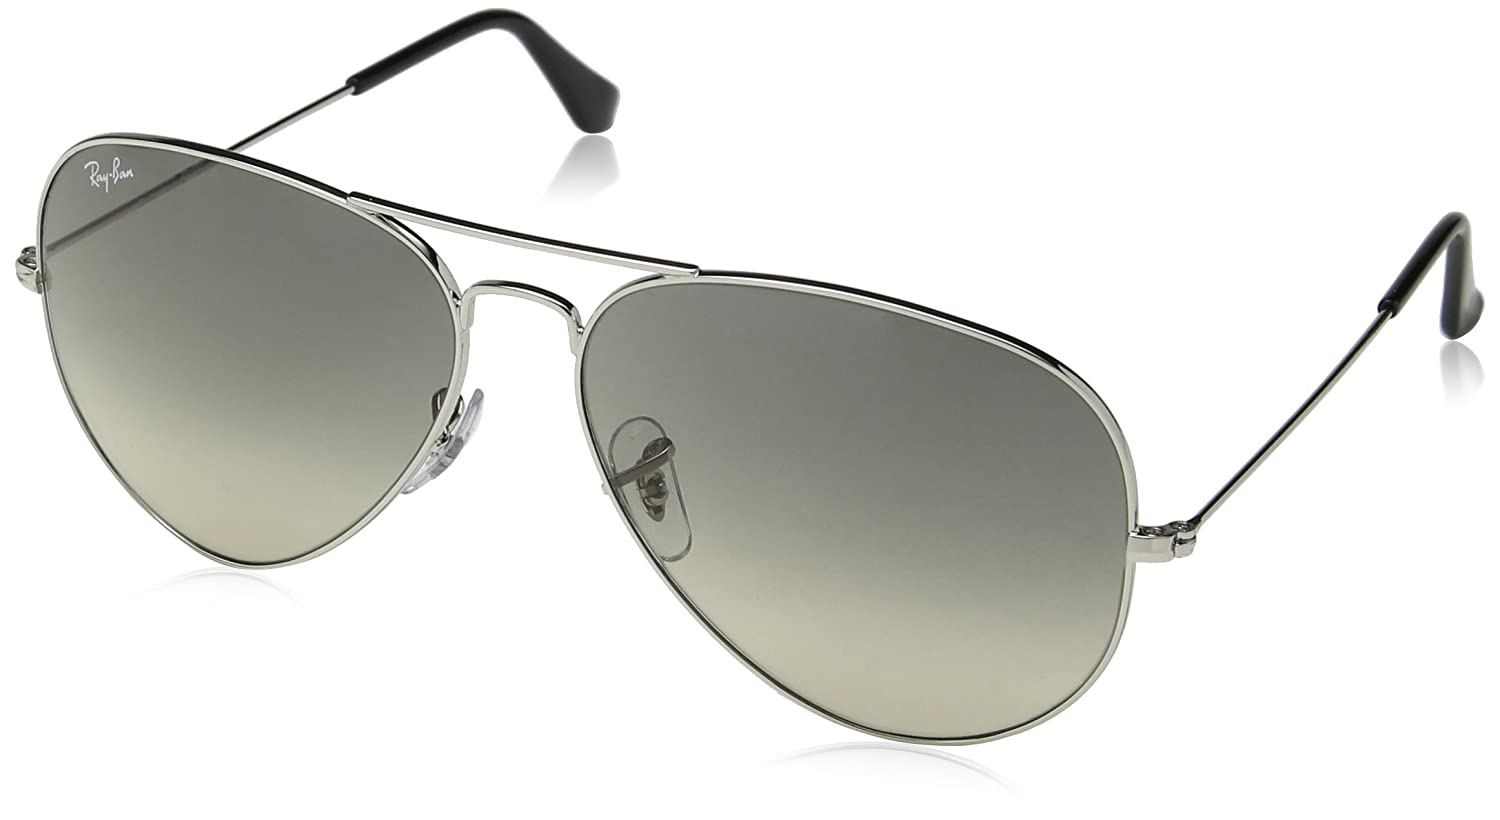 Ray Ban Silver Frame Glasses : Ray-Ban RB3025 003/32 Aviator Silver Frame Lt Grey ...